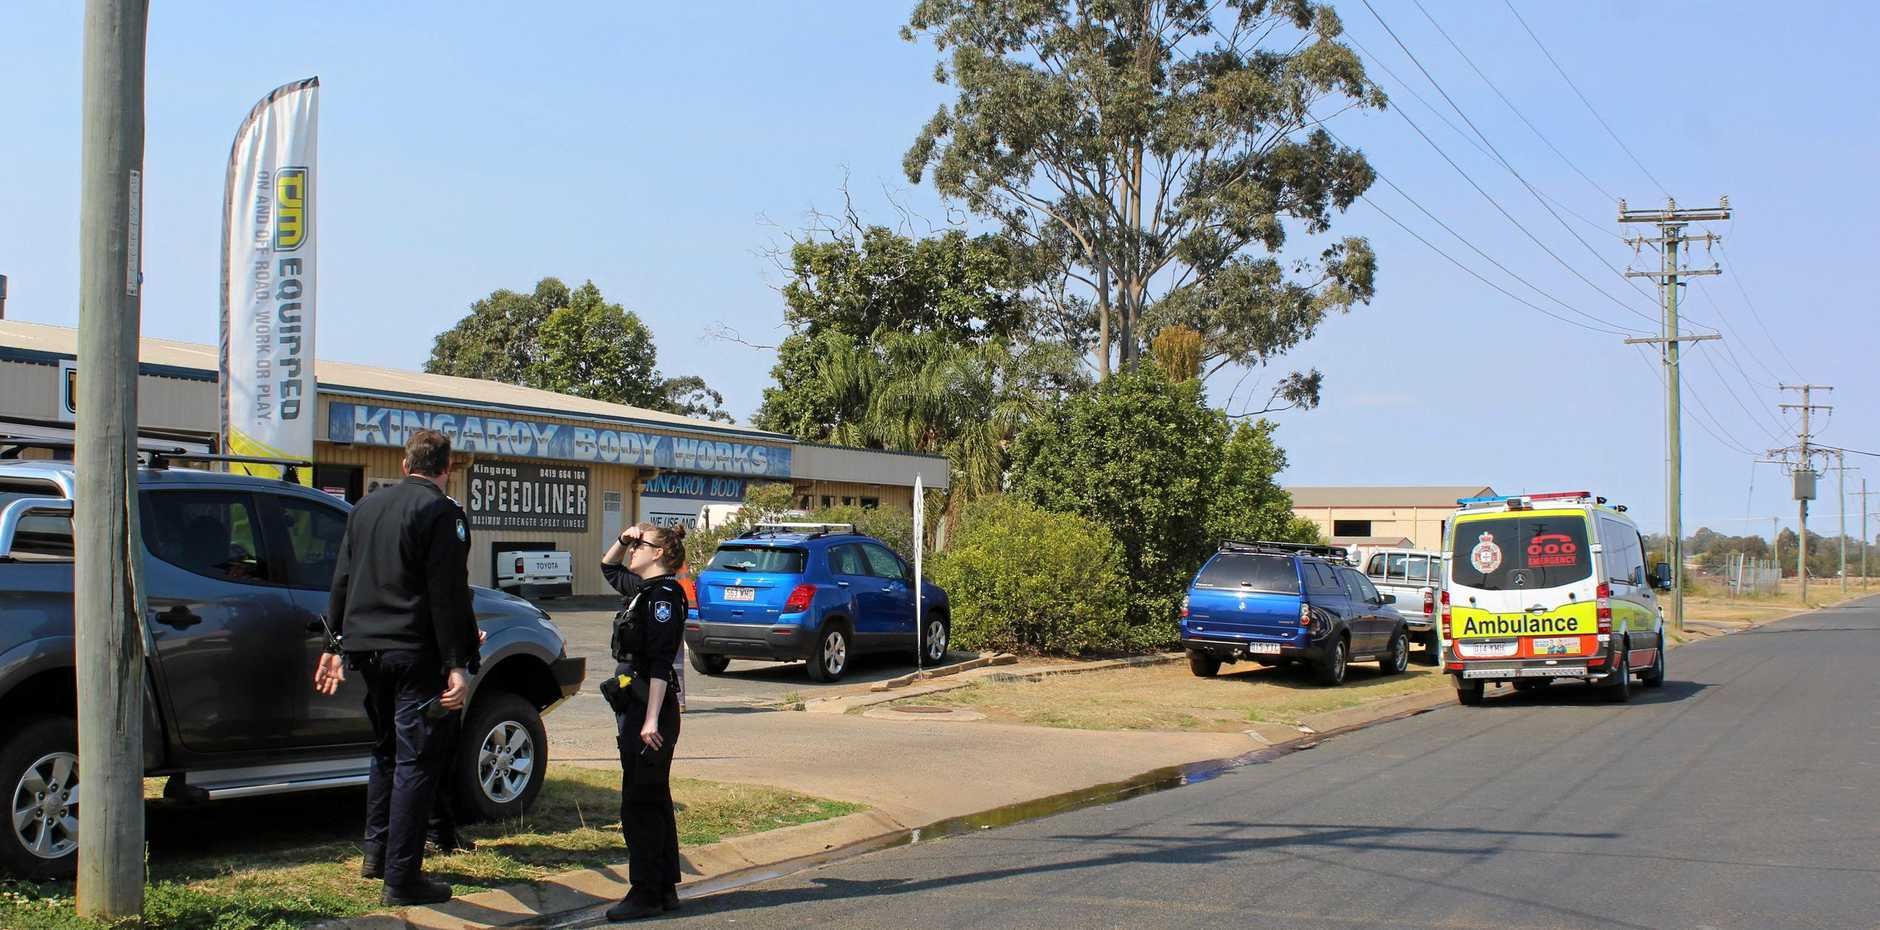 Queensland Police and Ambulance services responded to an incident at a local Kingaroy business.